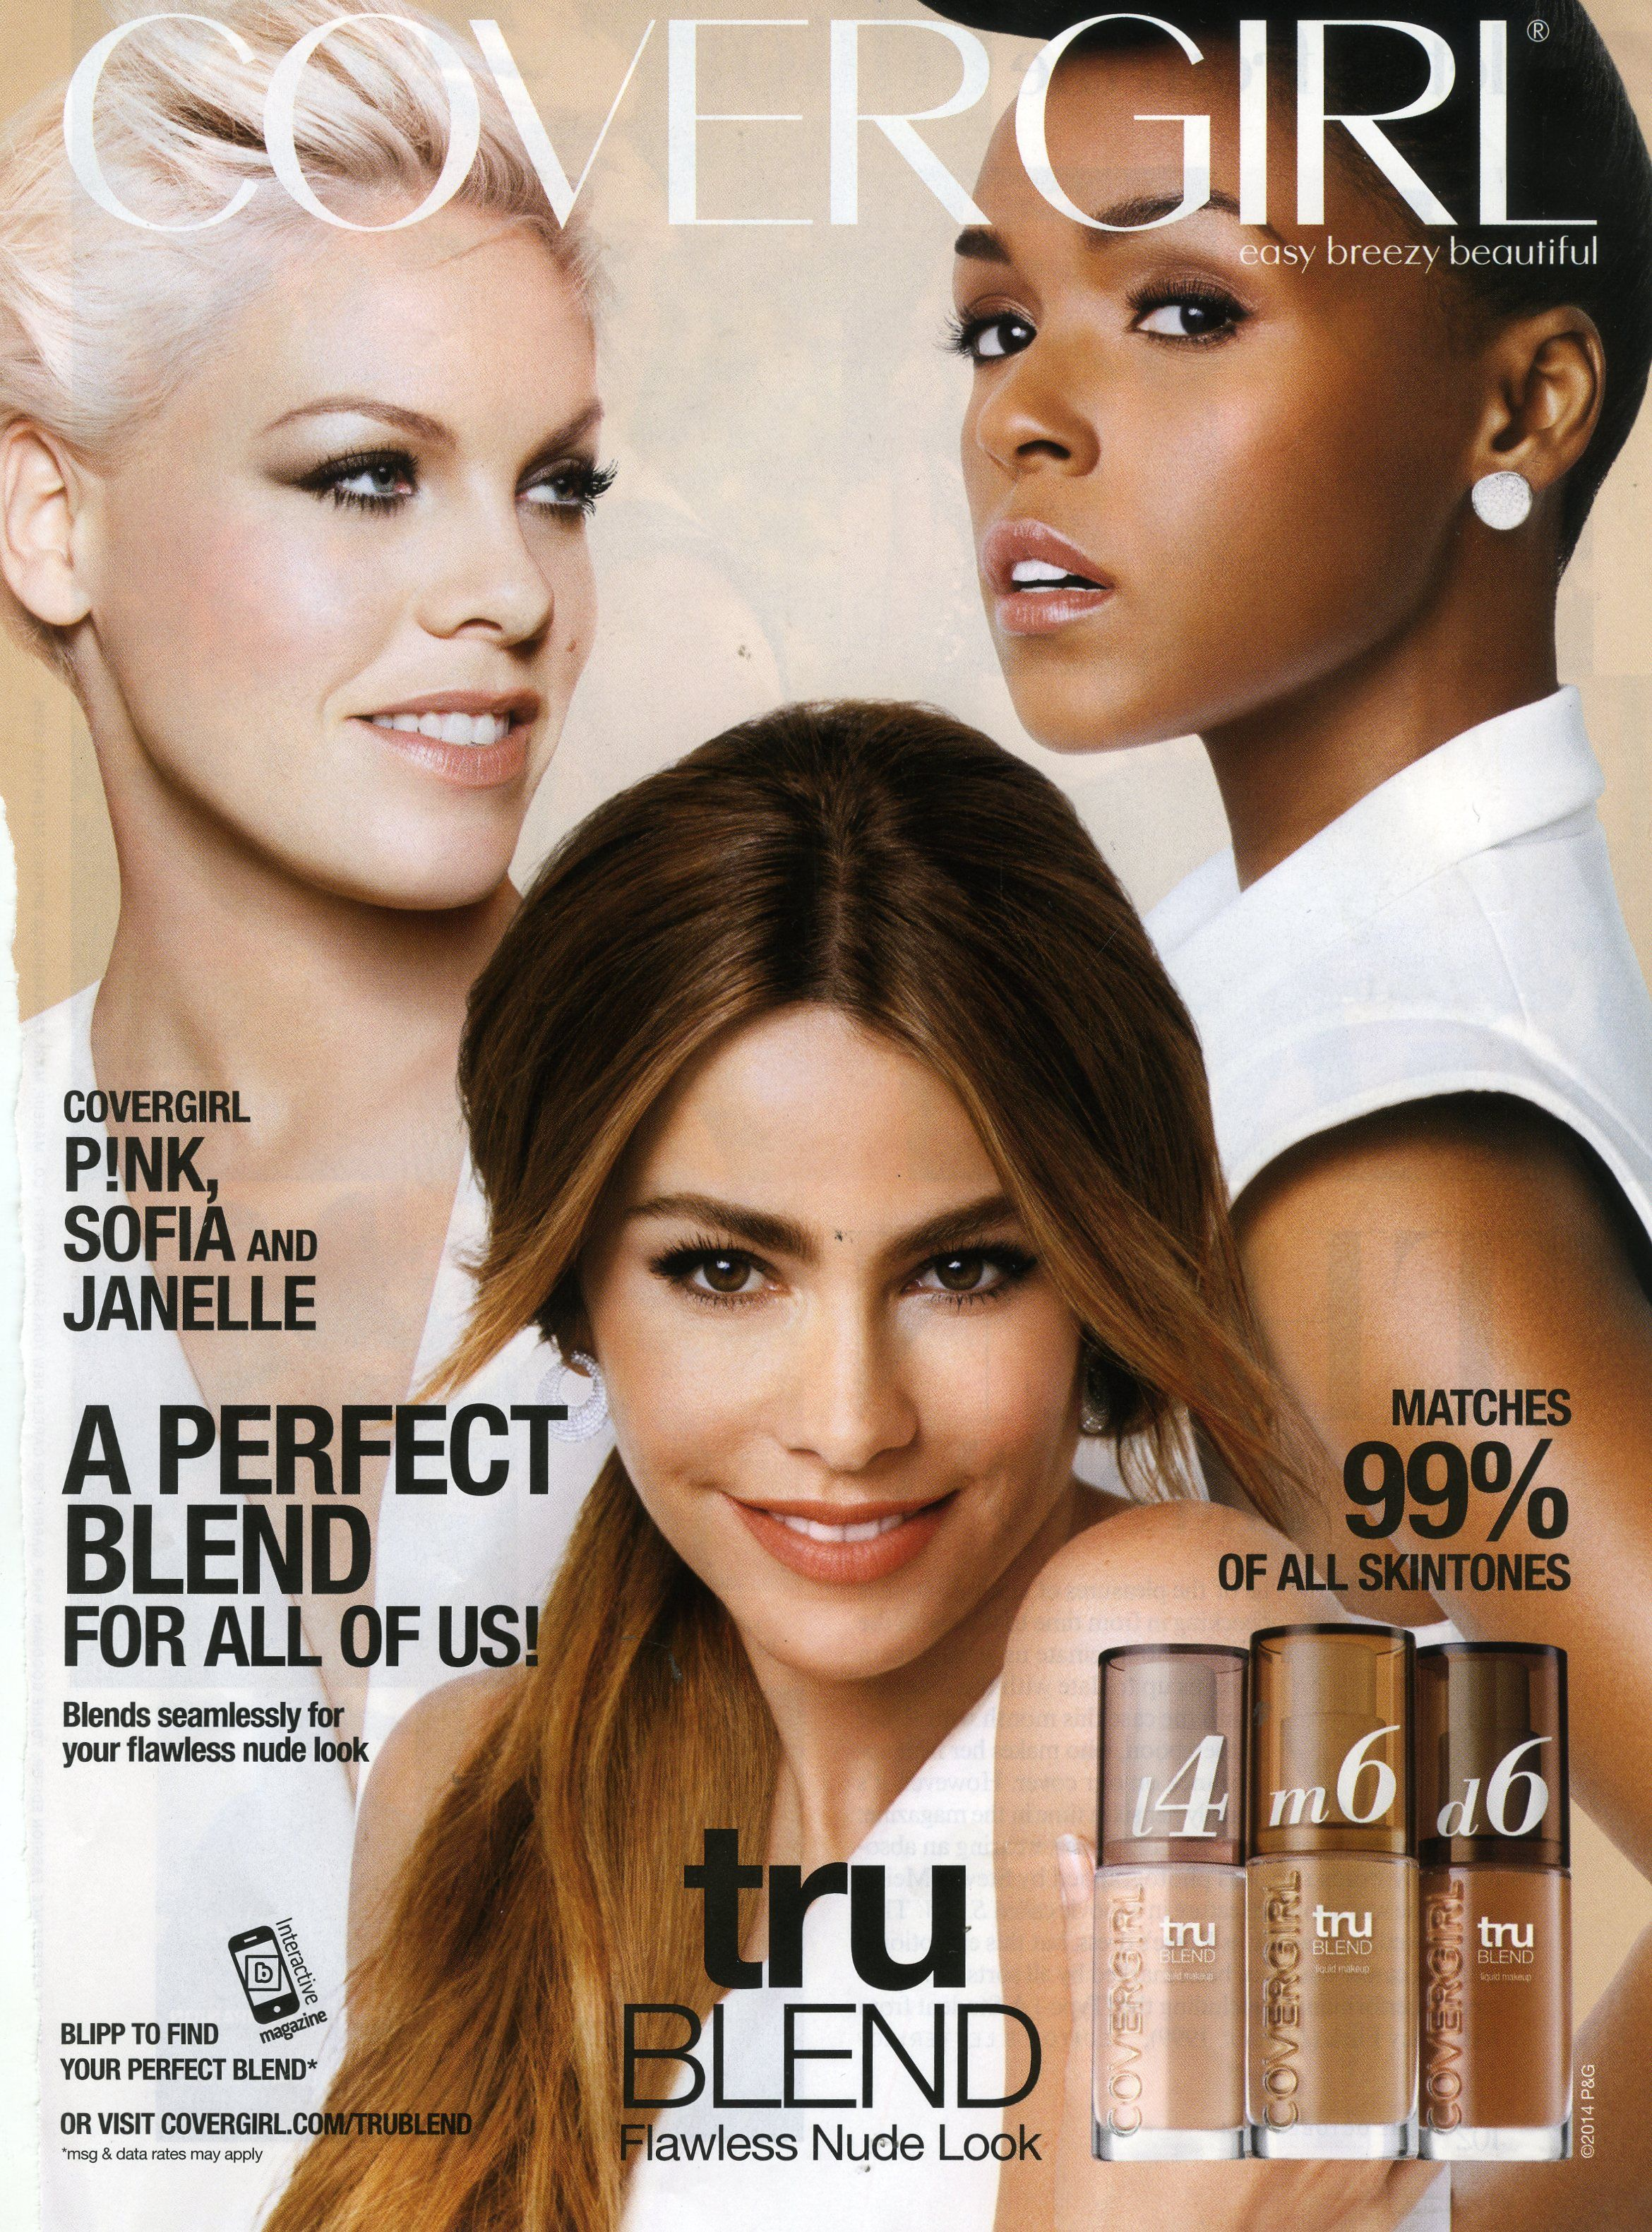 Pin by conor cahalan on Celebrity Endorsers Covergirl